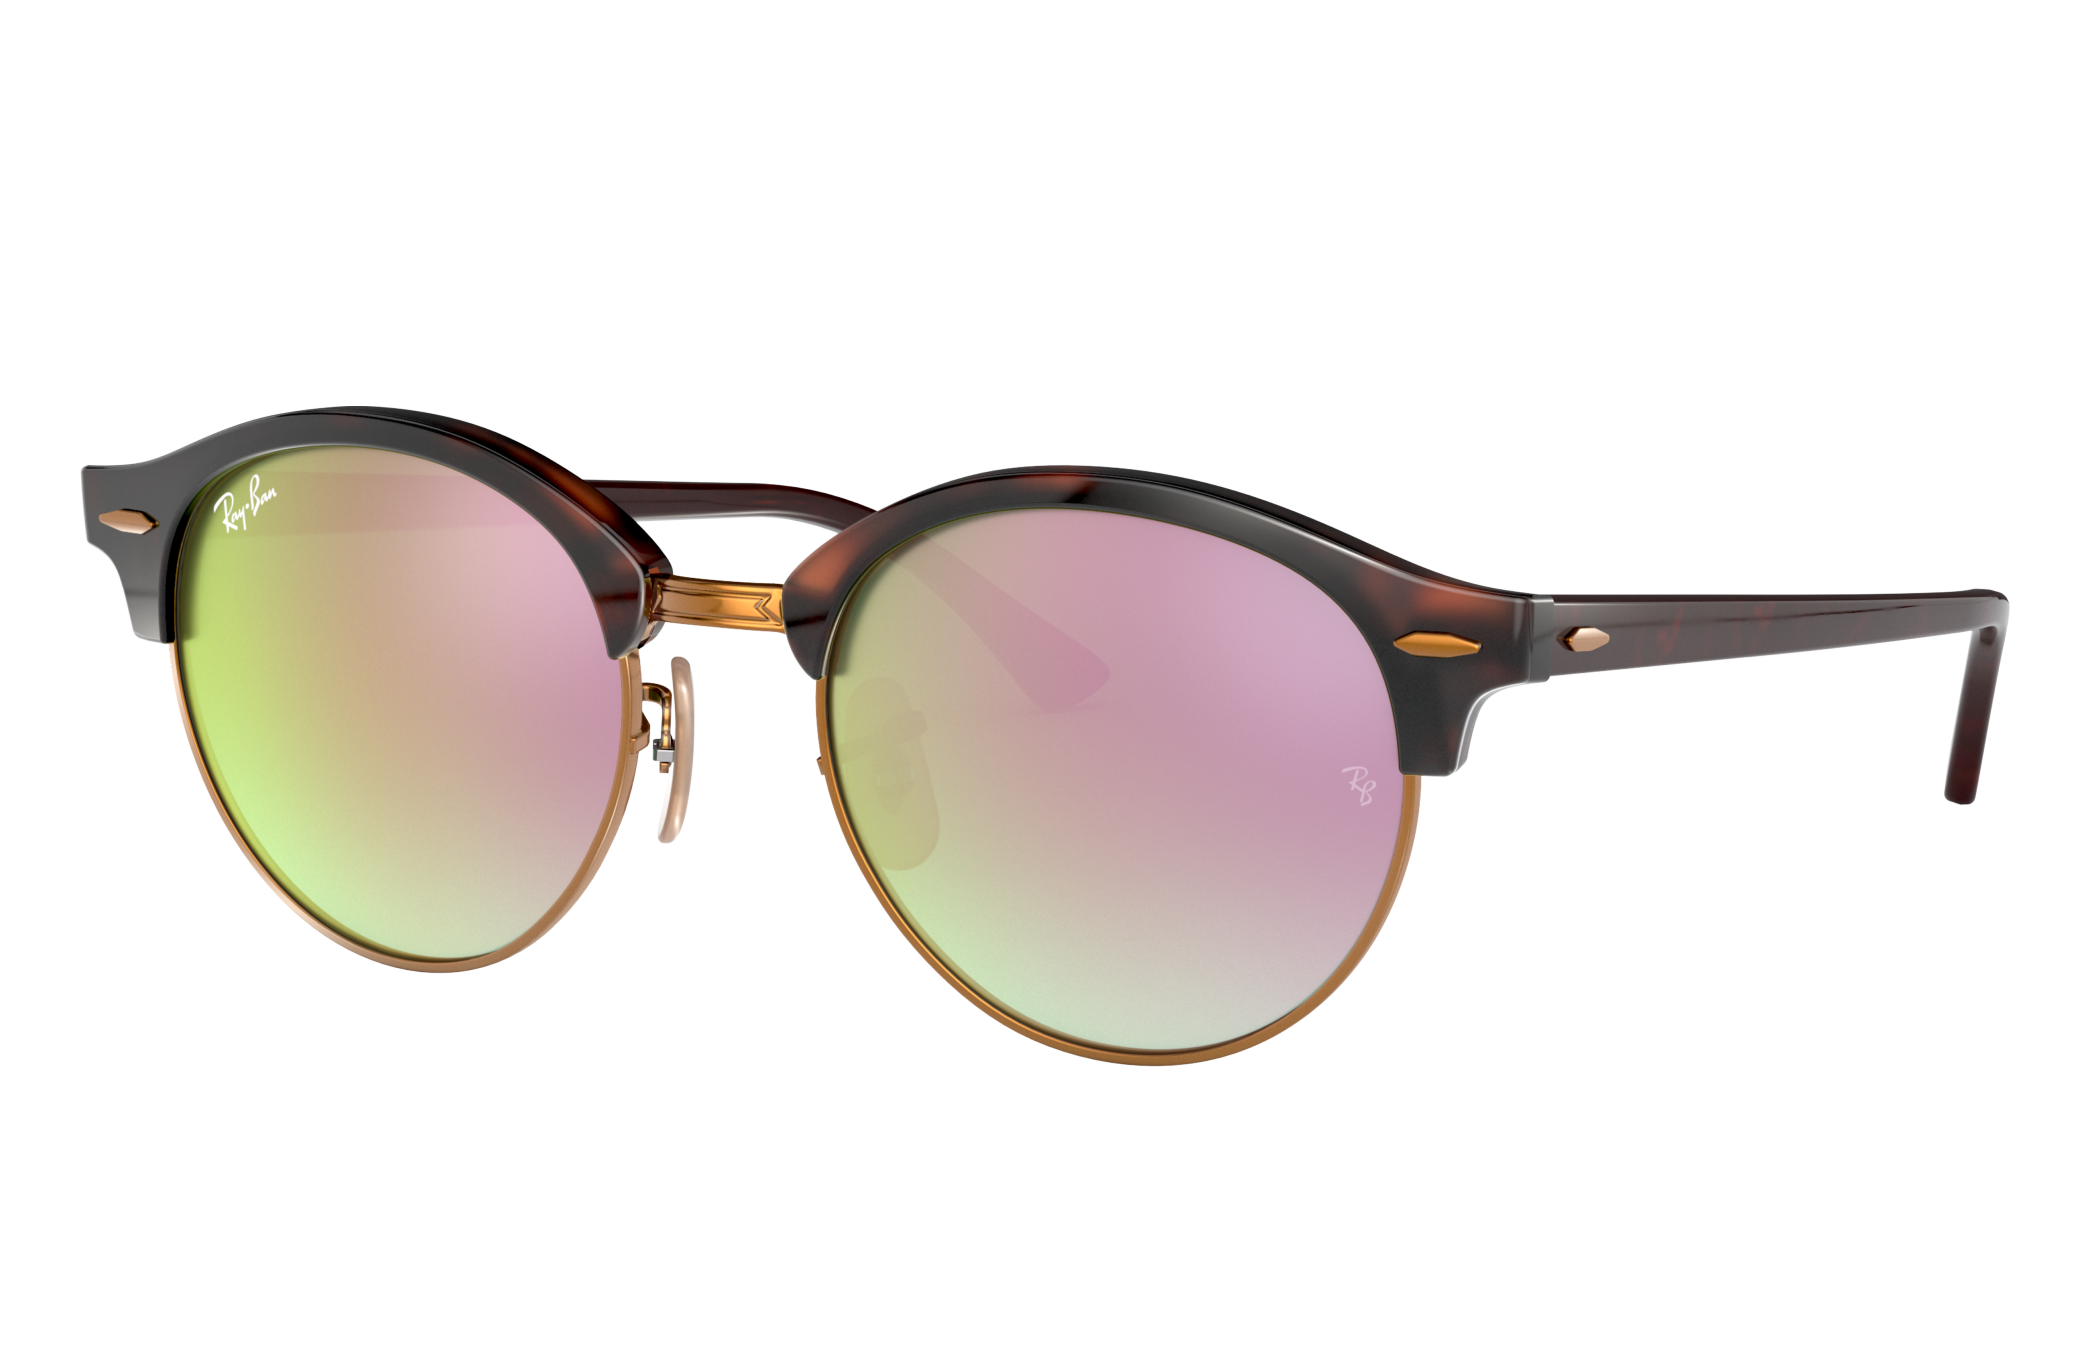 Ray-Ban Clubround @collection Tortoise, Pink Lenses - RB4246